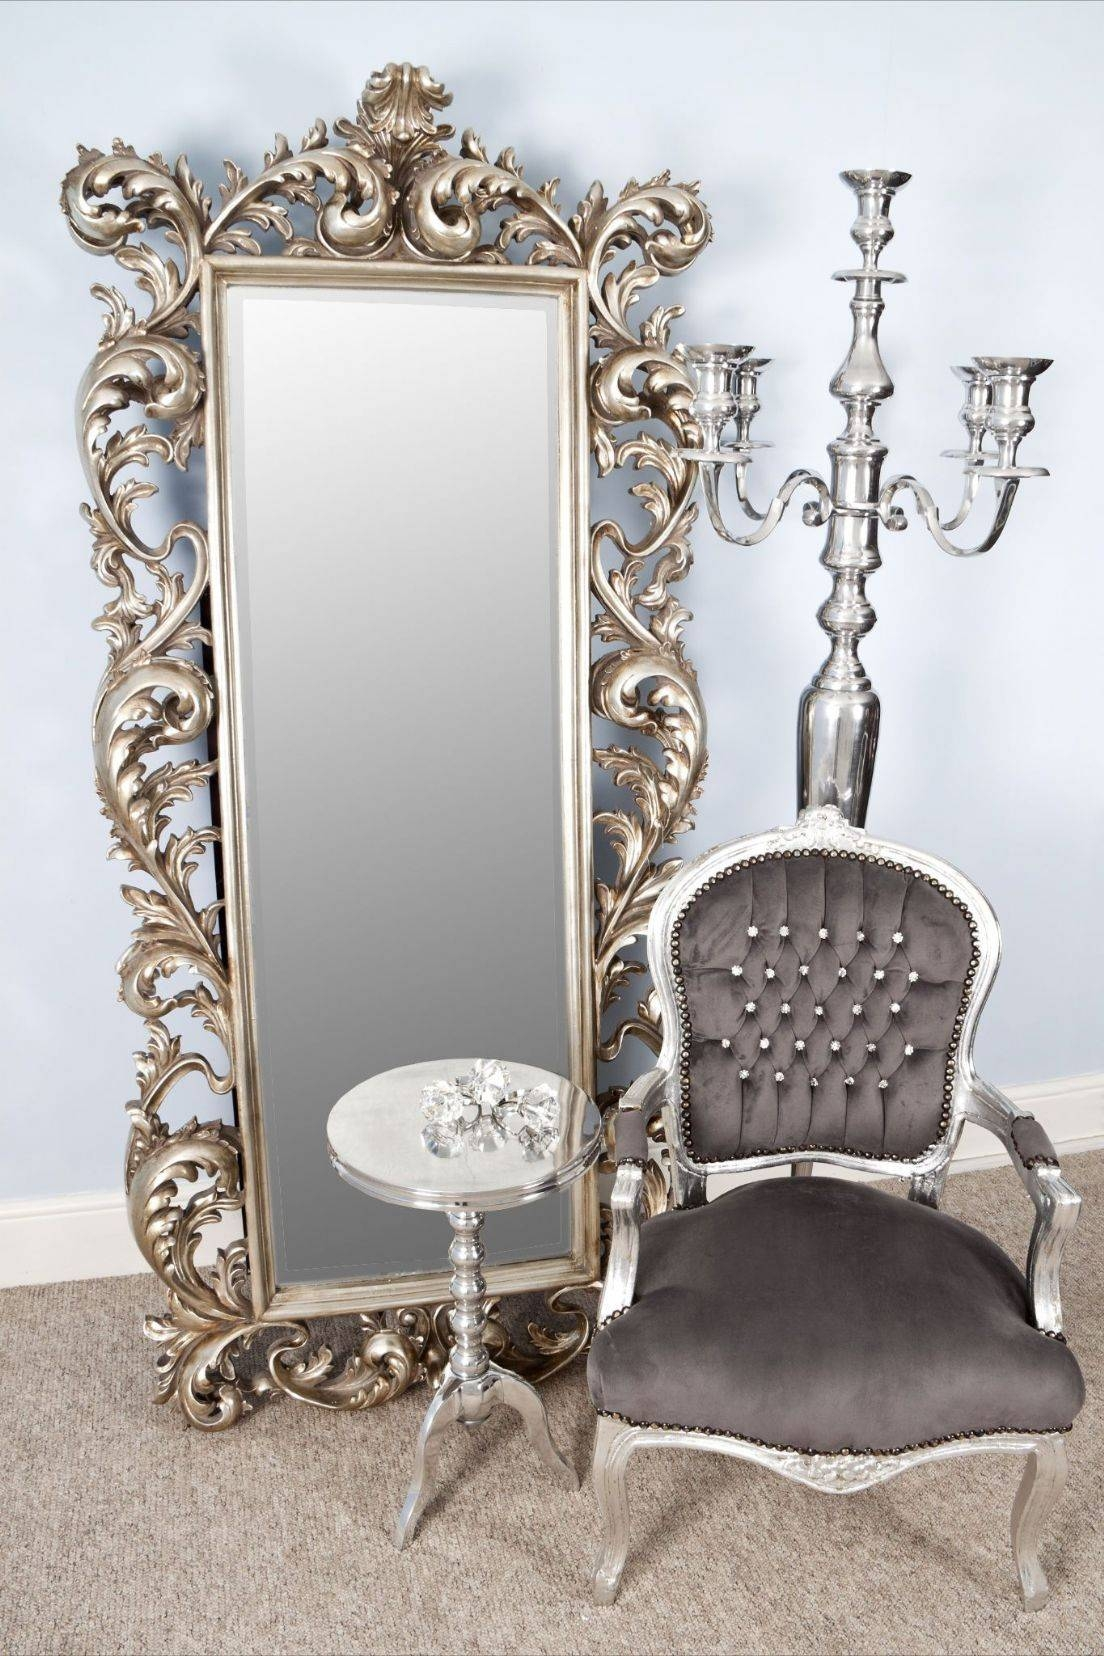 Vintage Full Length Mirror Dublin | Vanity Decoration intended for Large Silver Vintage Mirrors (Image 13 of 15)